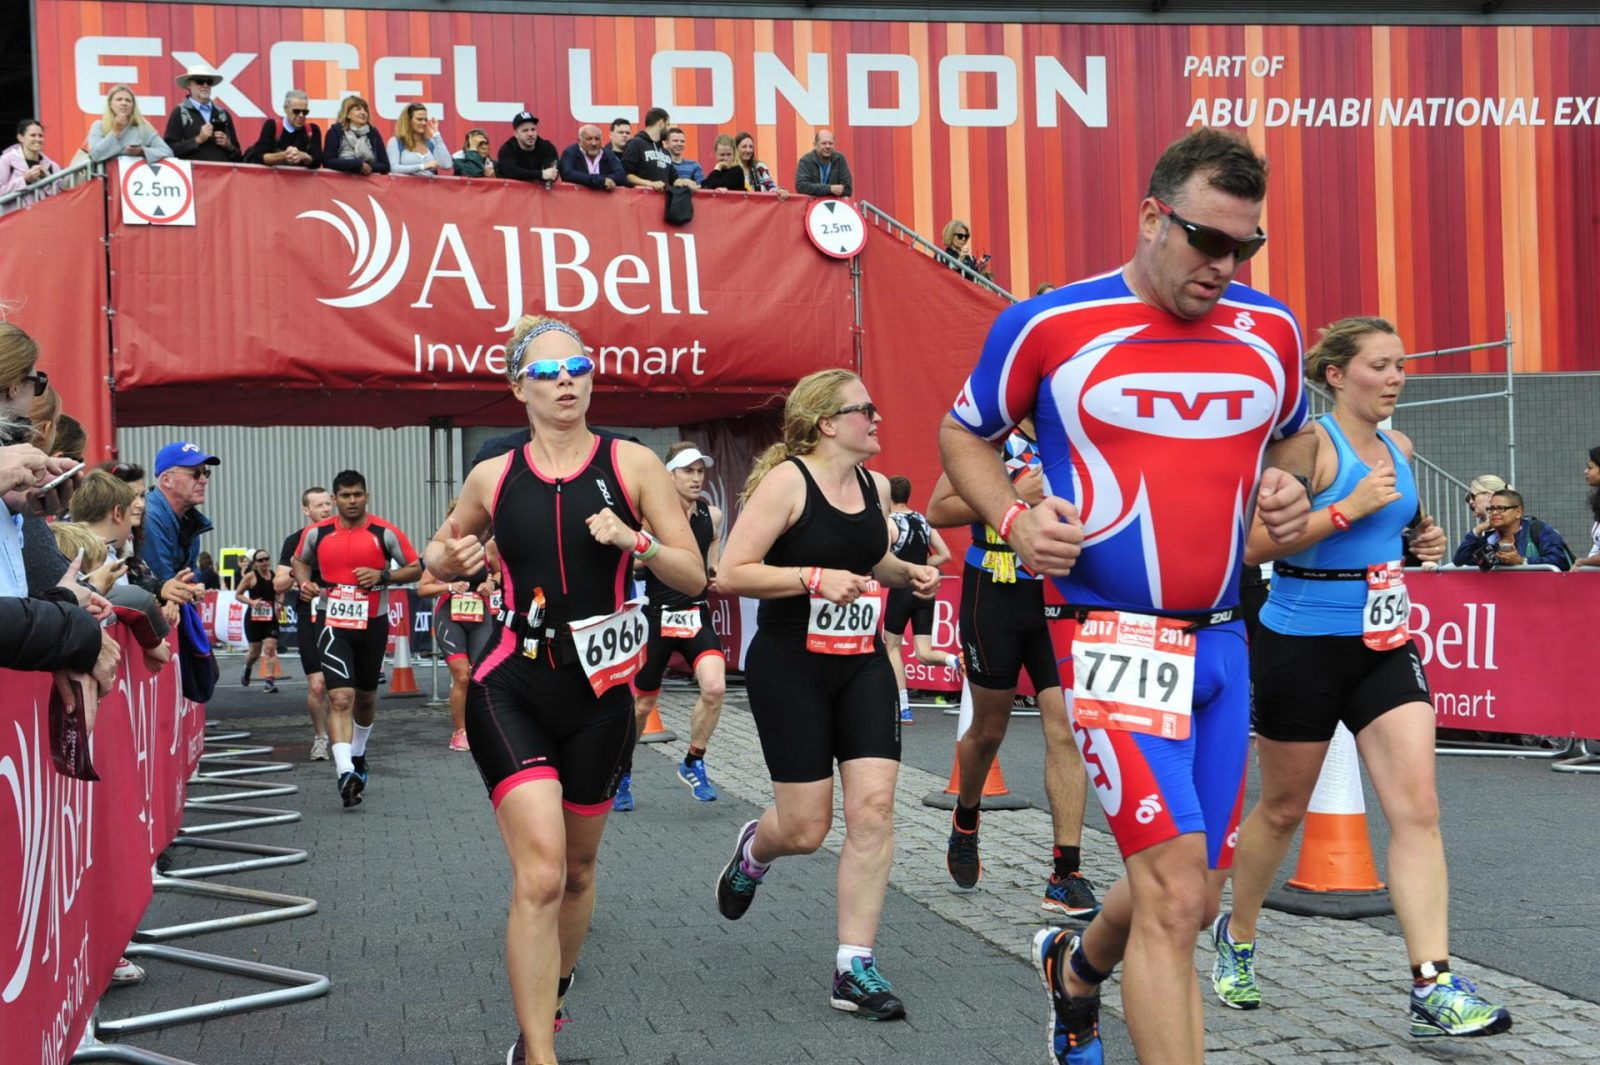 The London Triathlon Run